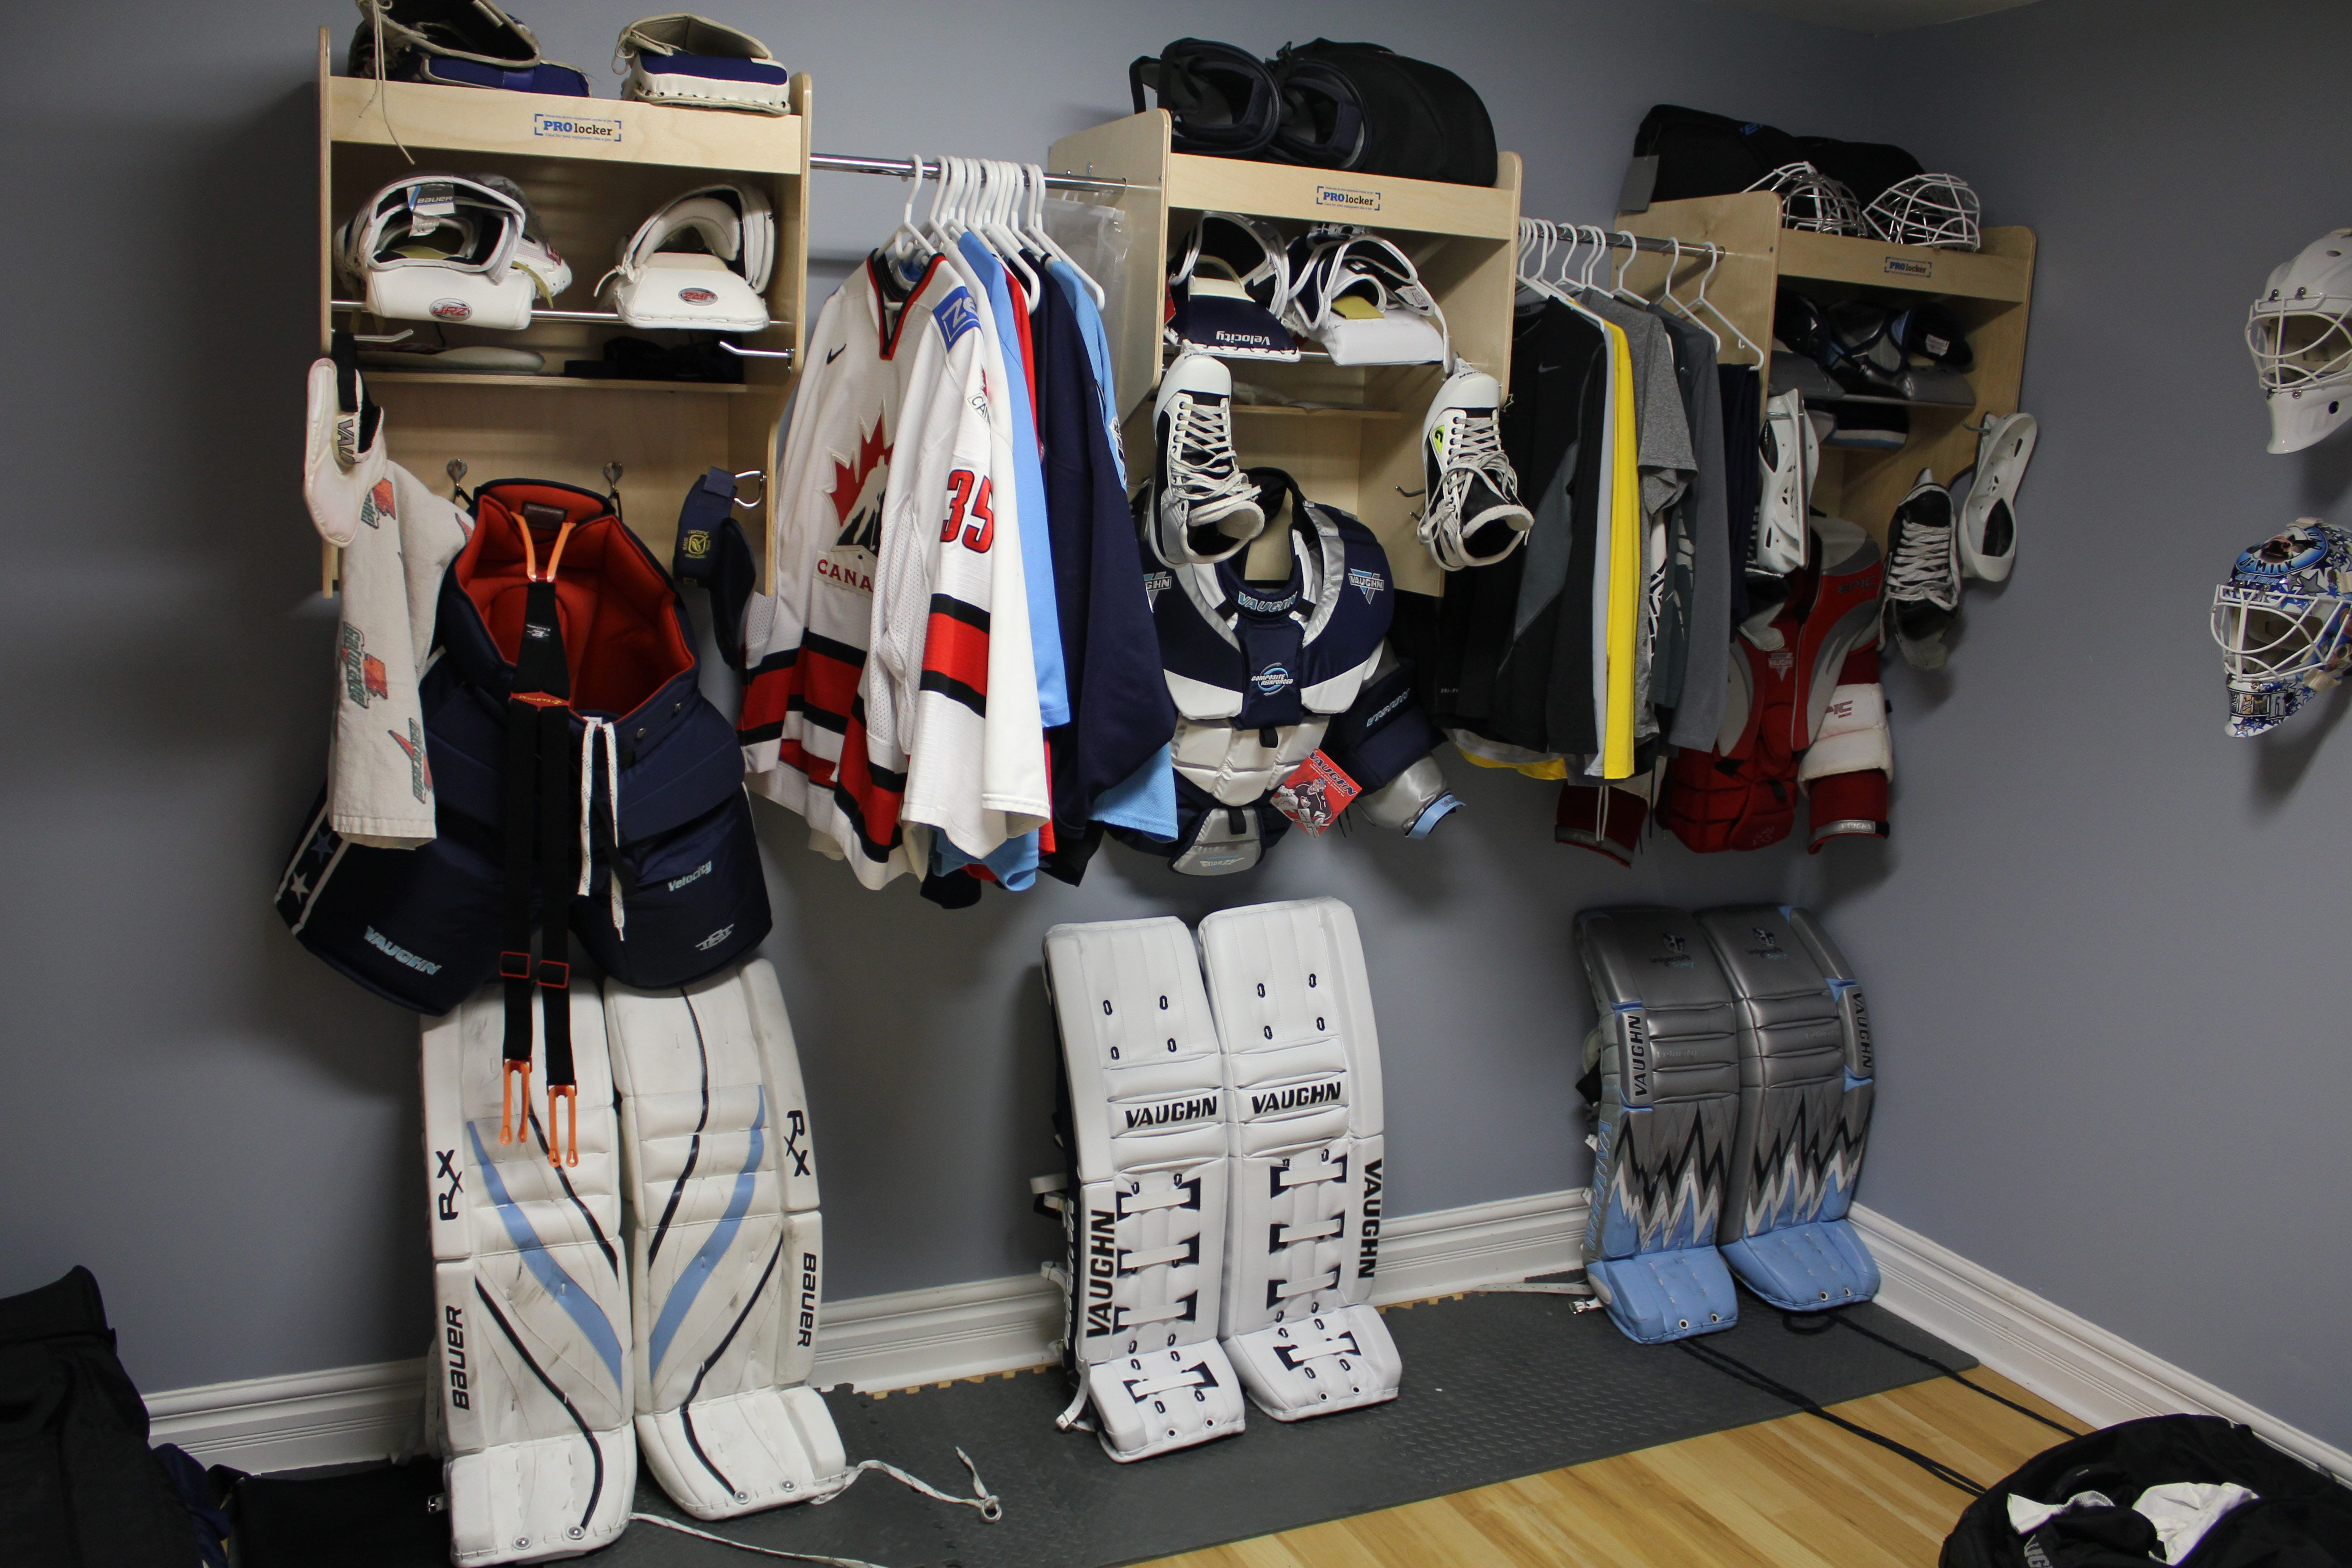 Welcome To Prolocker Care For Your Equiment Like A Pro Hockey Equipment Hockey Equipment Storage Hockey Equipment Drying Rack